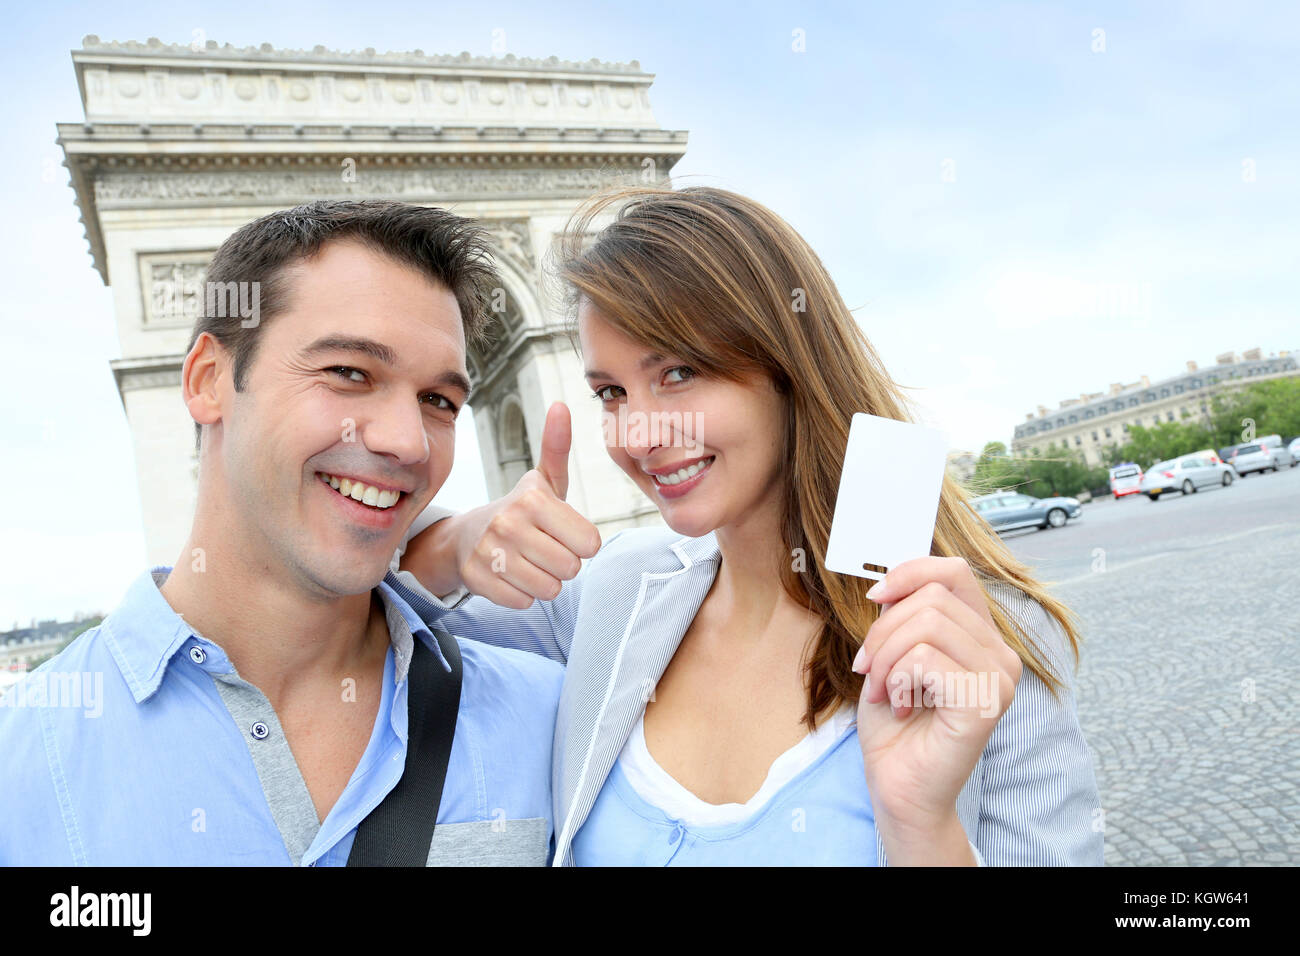 Cheerful couple holding tourist ticket by the Arch of Triumph - Stock Image